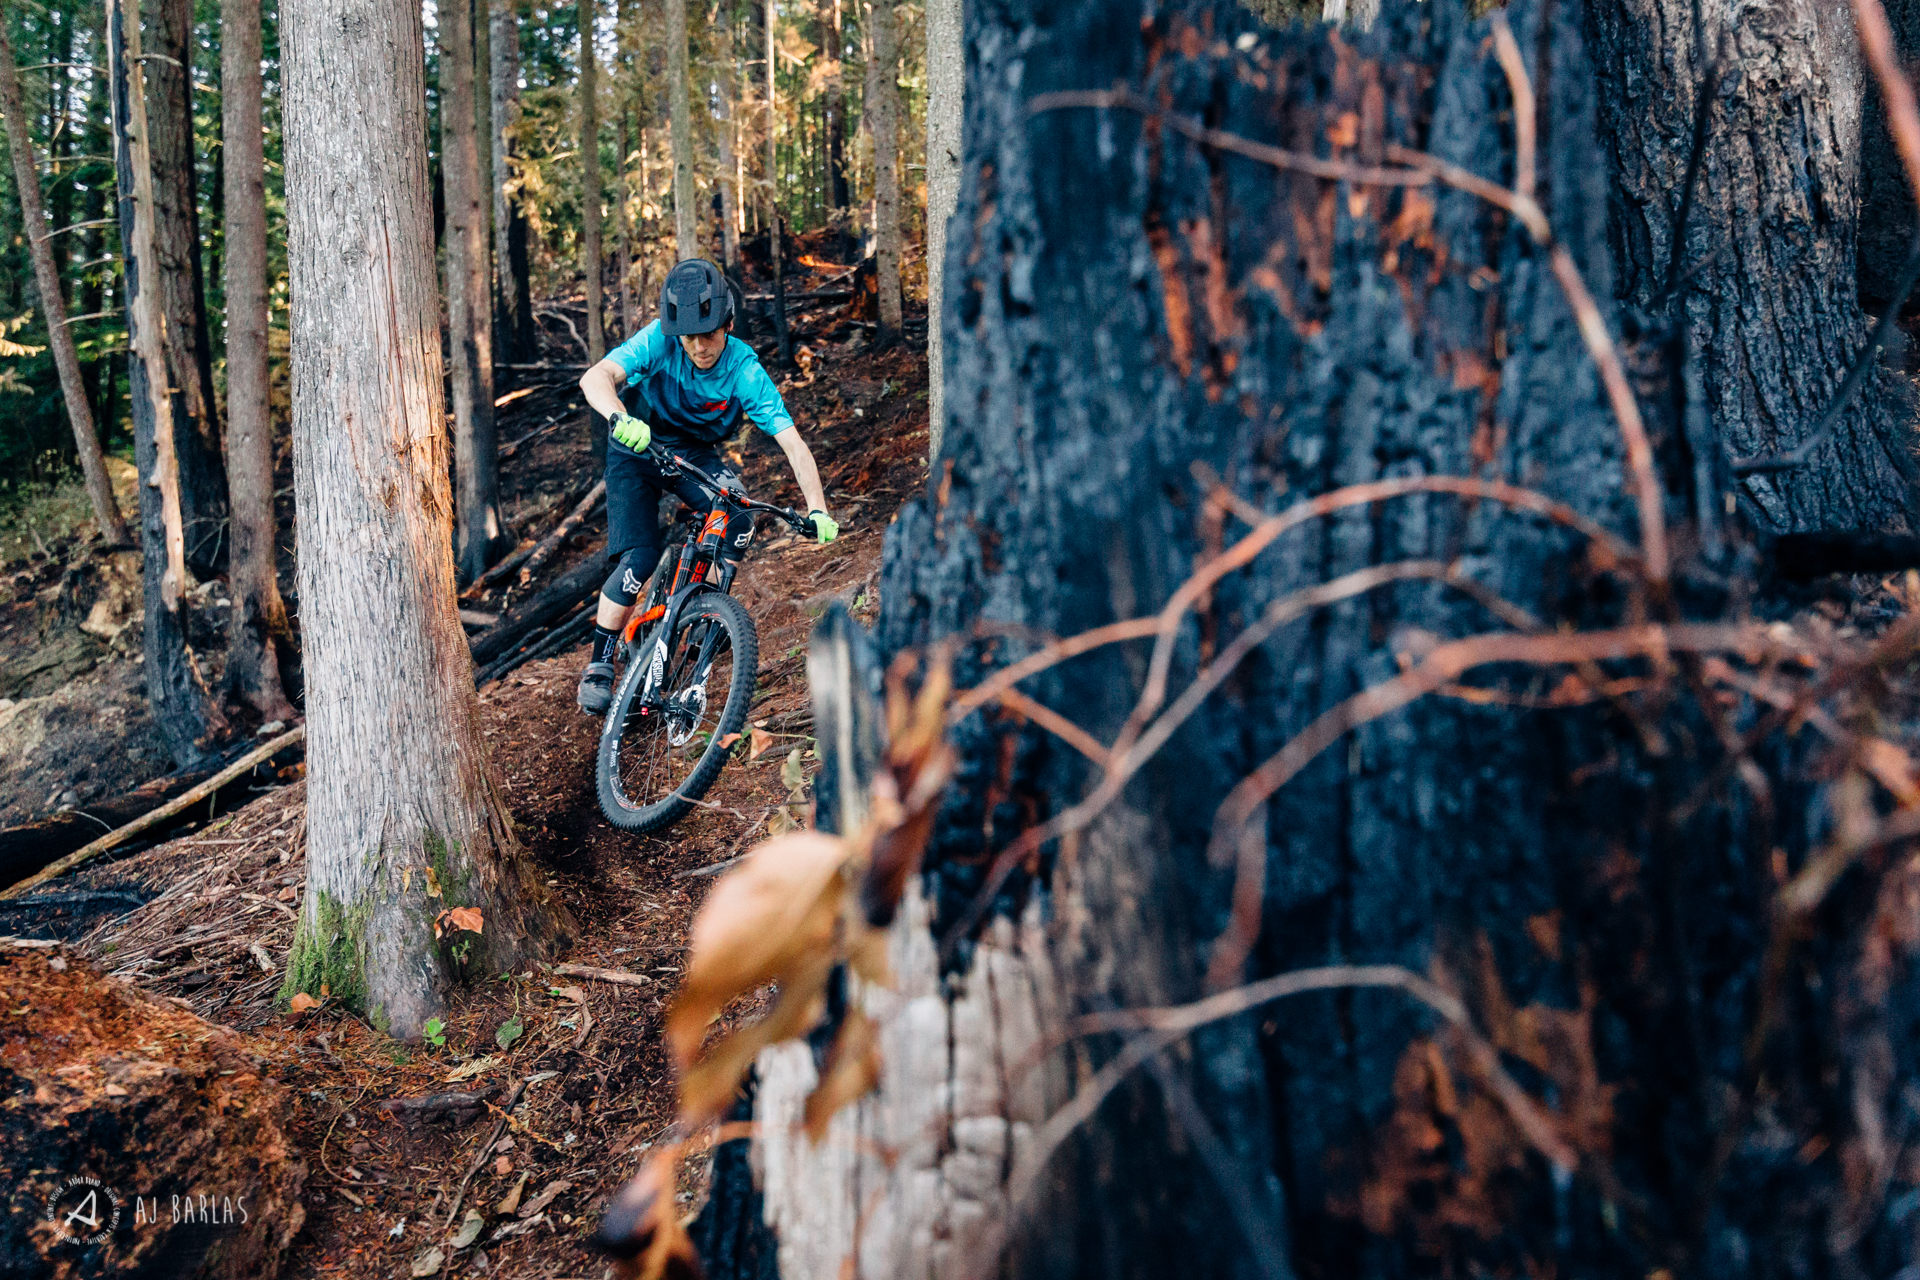 Jessie Mcauley riding his trail bike through burnt forrest